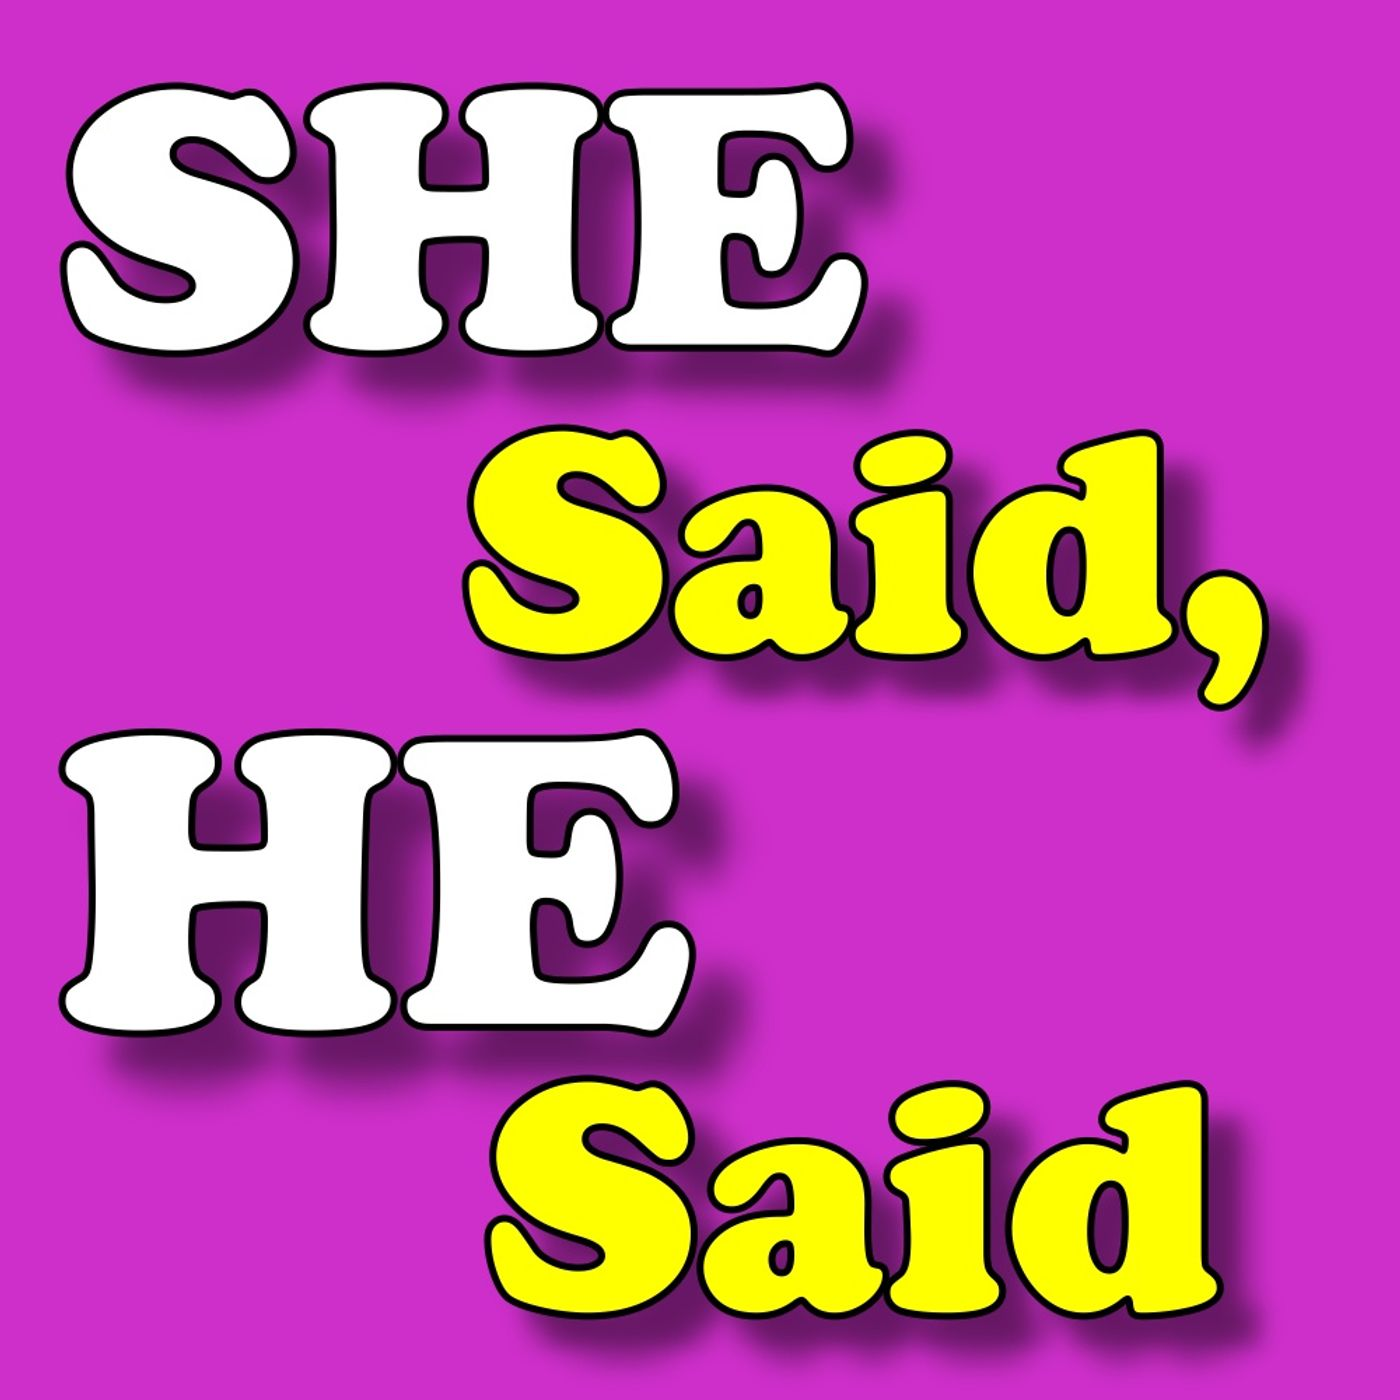 She Said, He Said Relationships, Daily Life & Love, Men and Women's Views